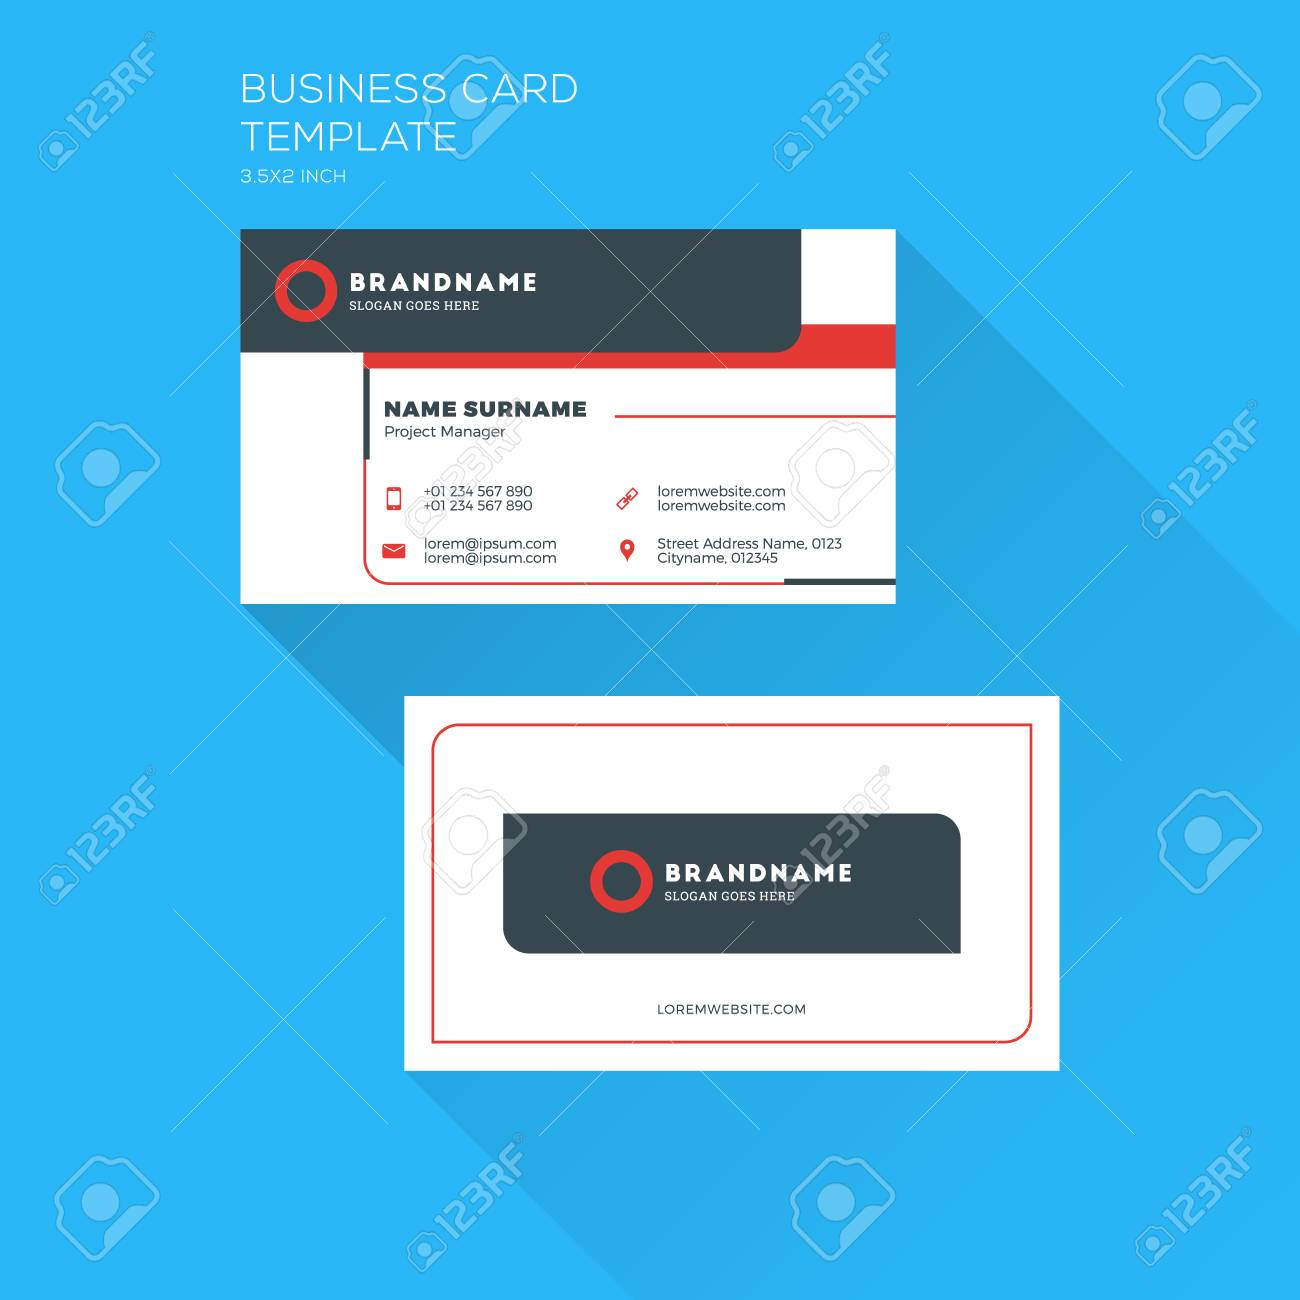 Corporate business card print template personal visiting card corporate business card print template personal visiting card with company clean flat design wajeb Image collections